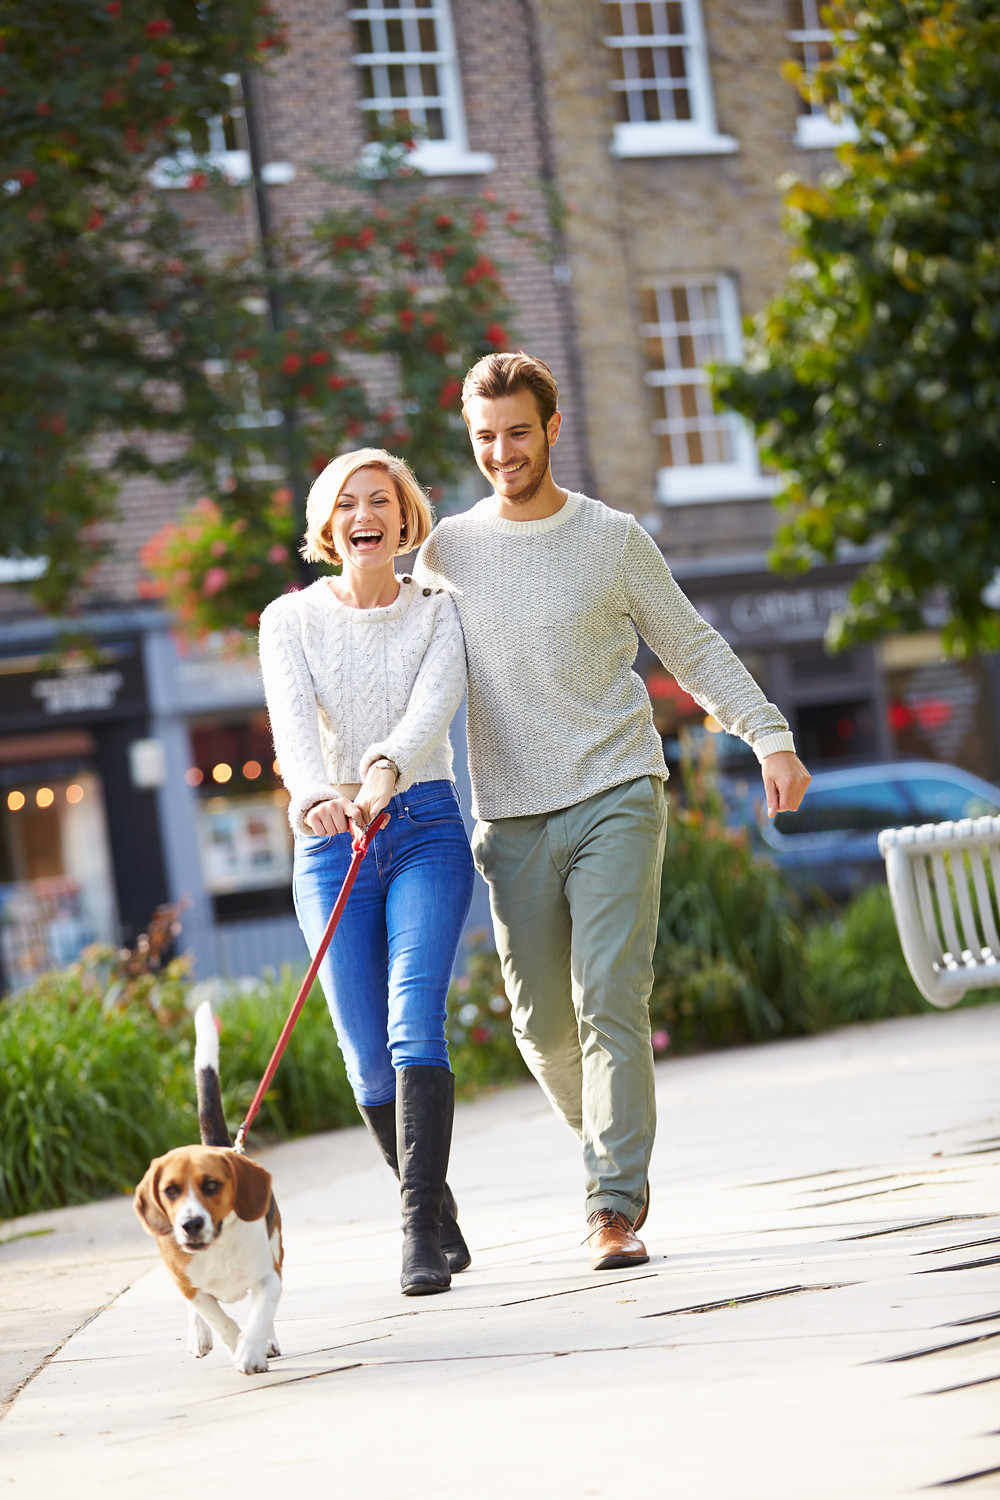 Socialize and Enjoy a Walk with Your Dog by Dorice Stancher, MBA, CPDT-KA, Ridgewood Moms